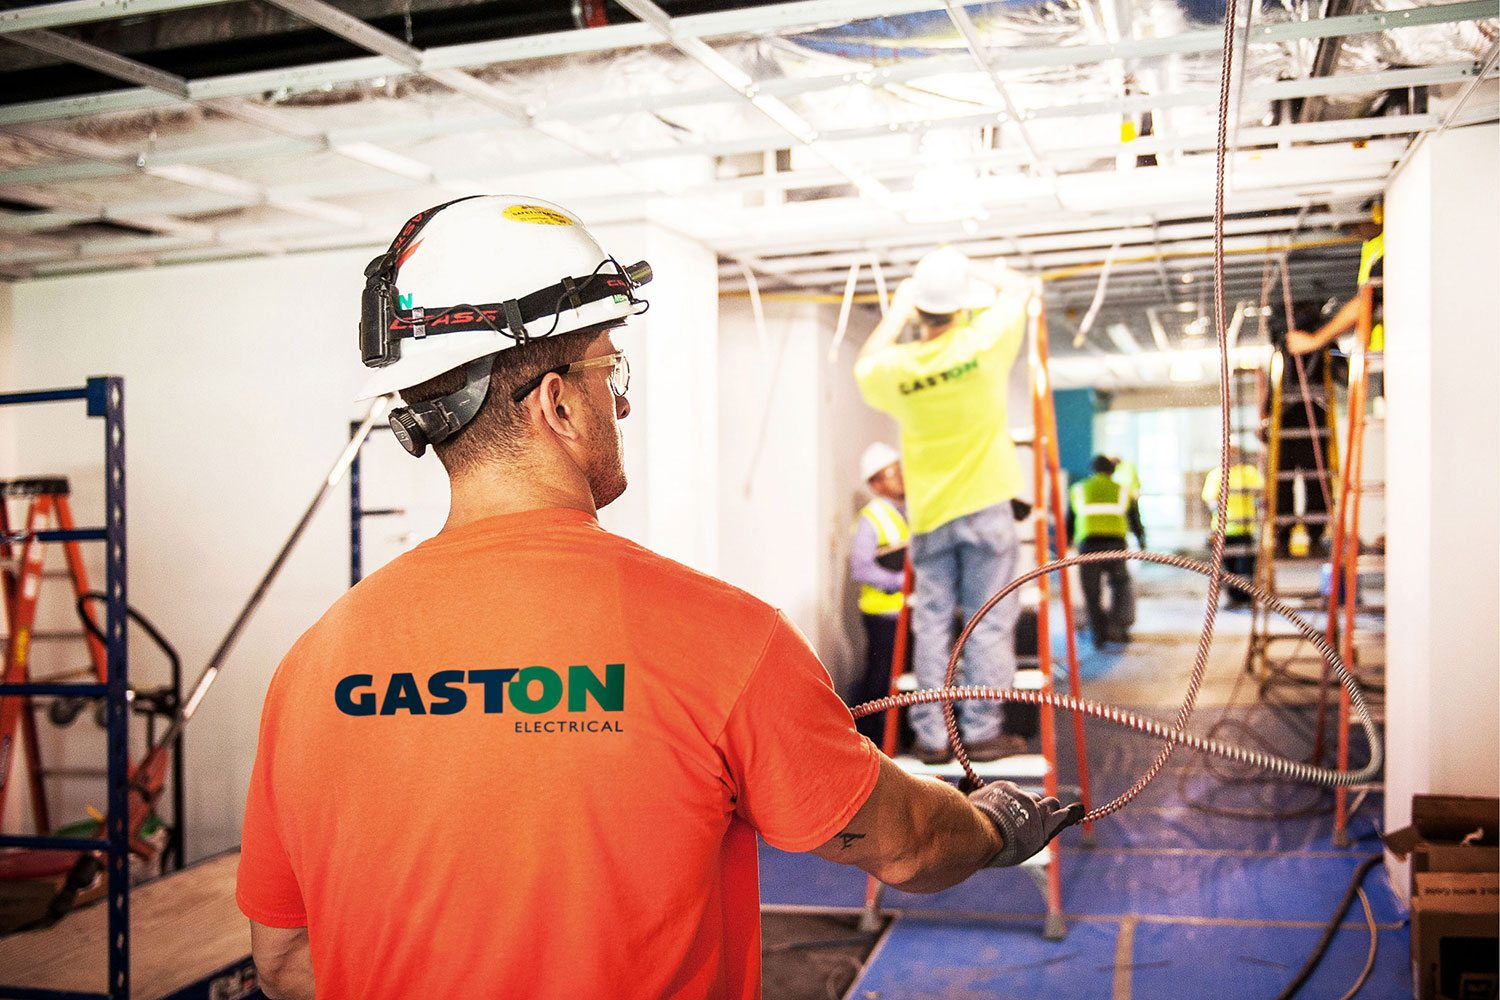 Gaston Electrical Core Purpose